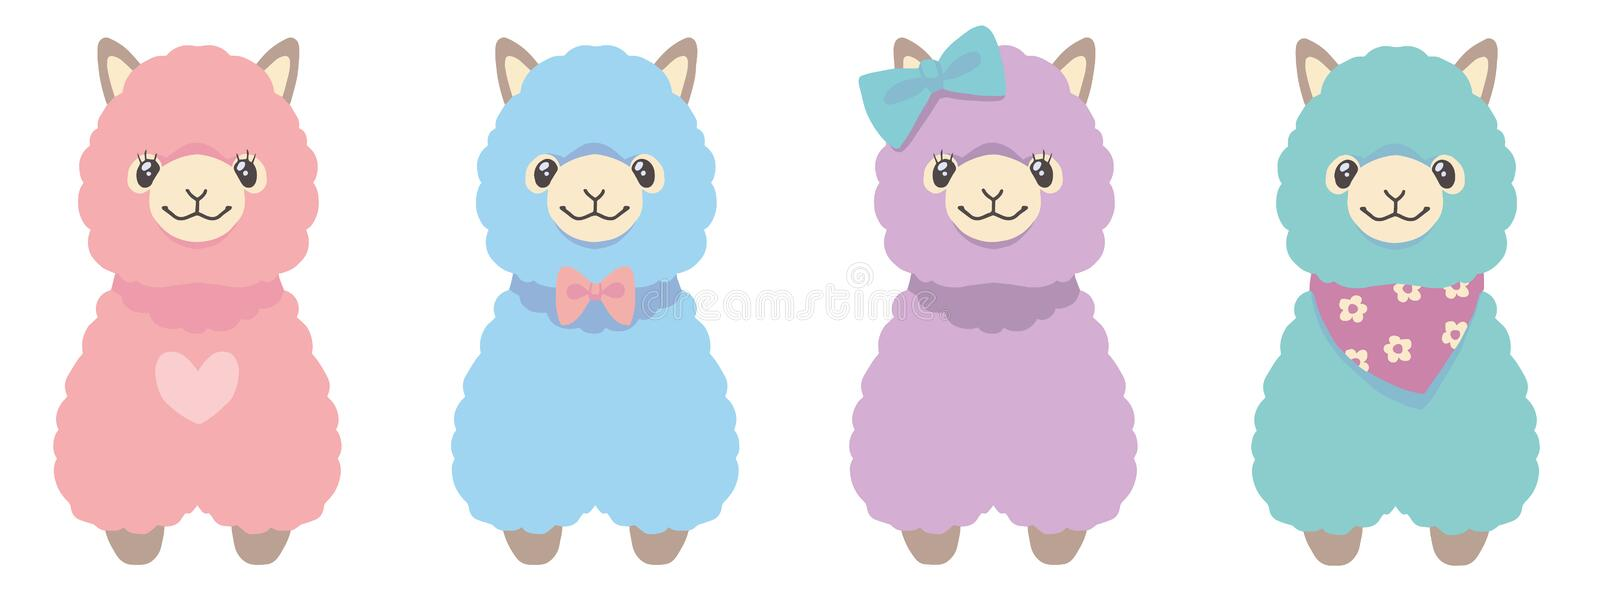 Lama set of four different fluffy pastel colored alpaca animal vector illustrations royalty free illustration